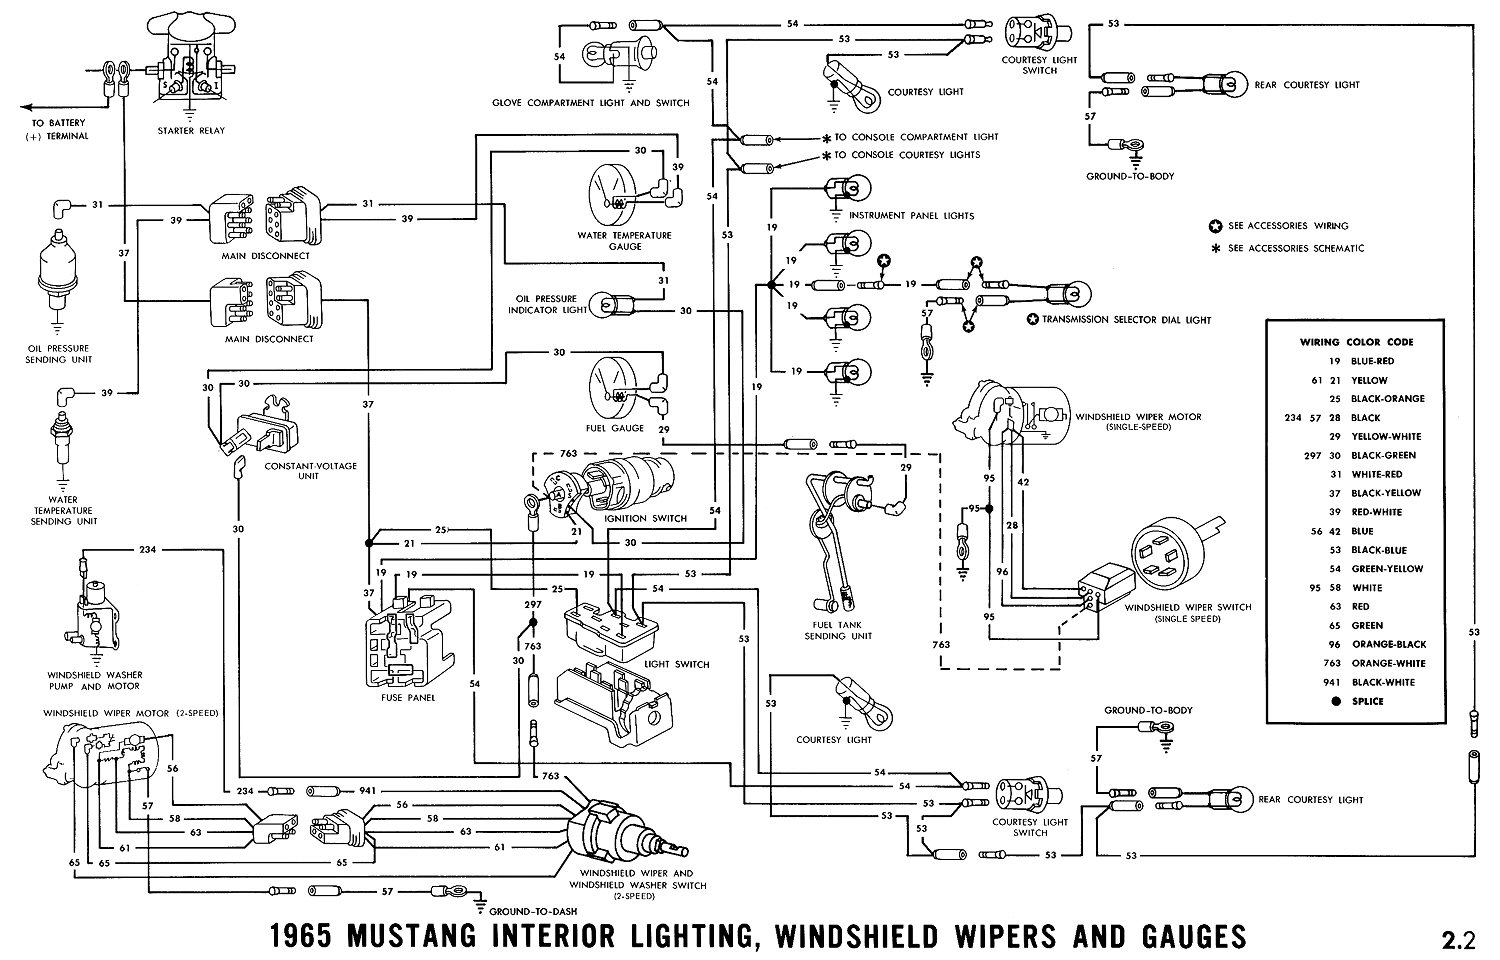 hight resolution of 65 mustang headlight wire diagram wiring diagram third level 1965 mustang wiring diagram on 1969 mustang fastback fuse box diagram